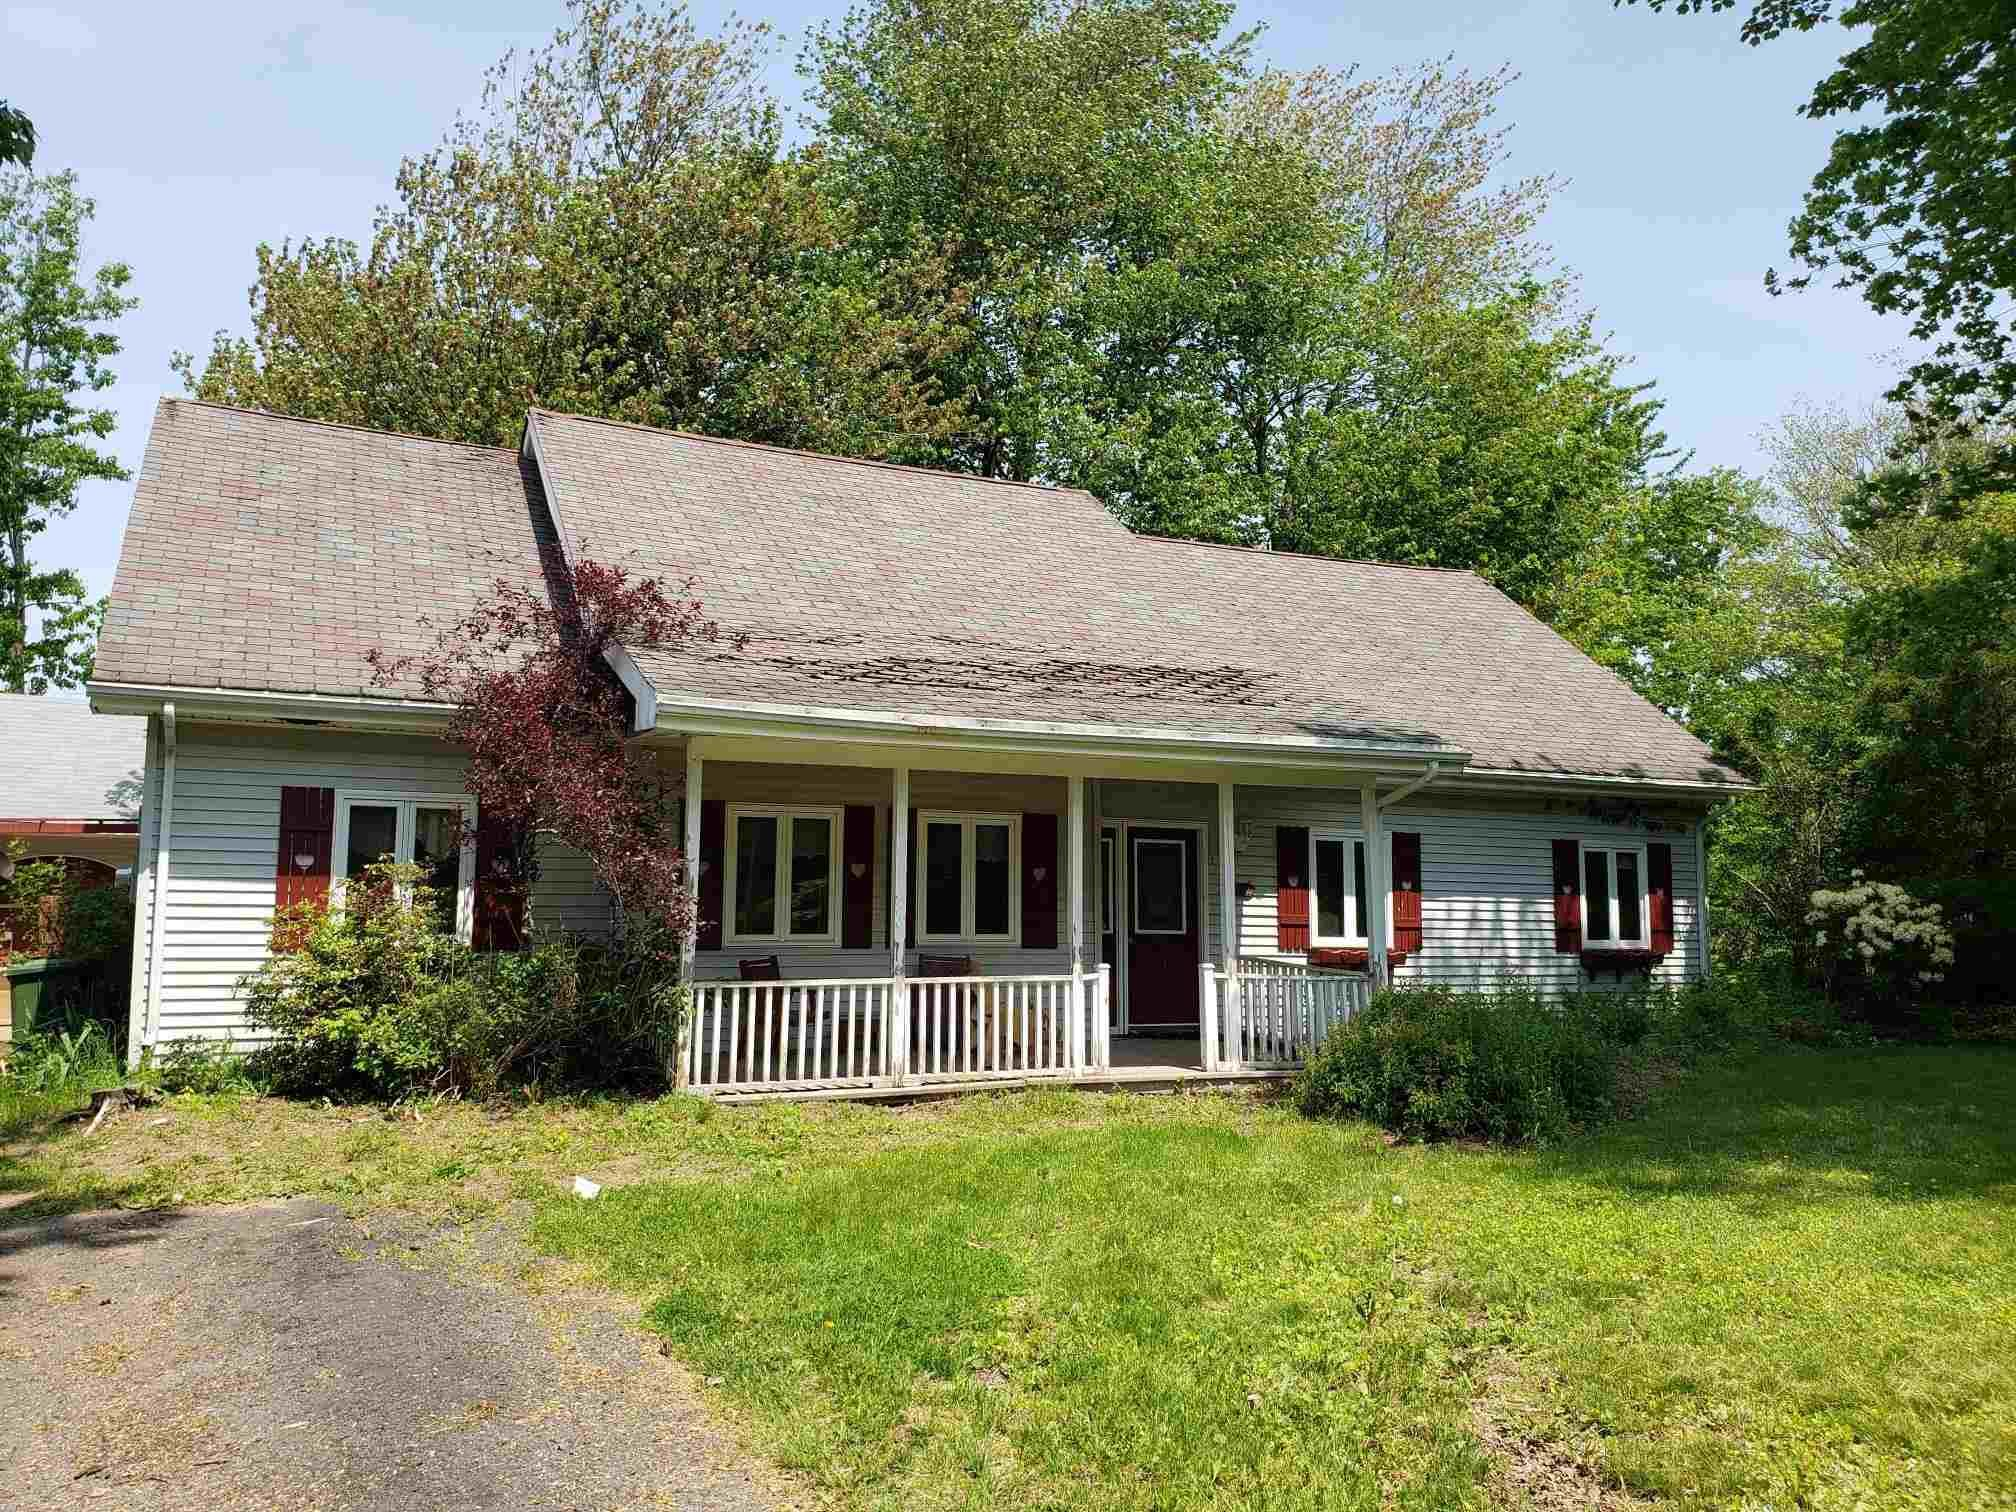 Main Photo: 2761 Poplar Drive in Coldbrook: 404-Kings County Residential for sale (Annapolis Valley)  : MLS®# 202114168